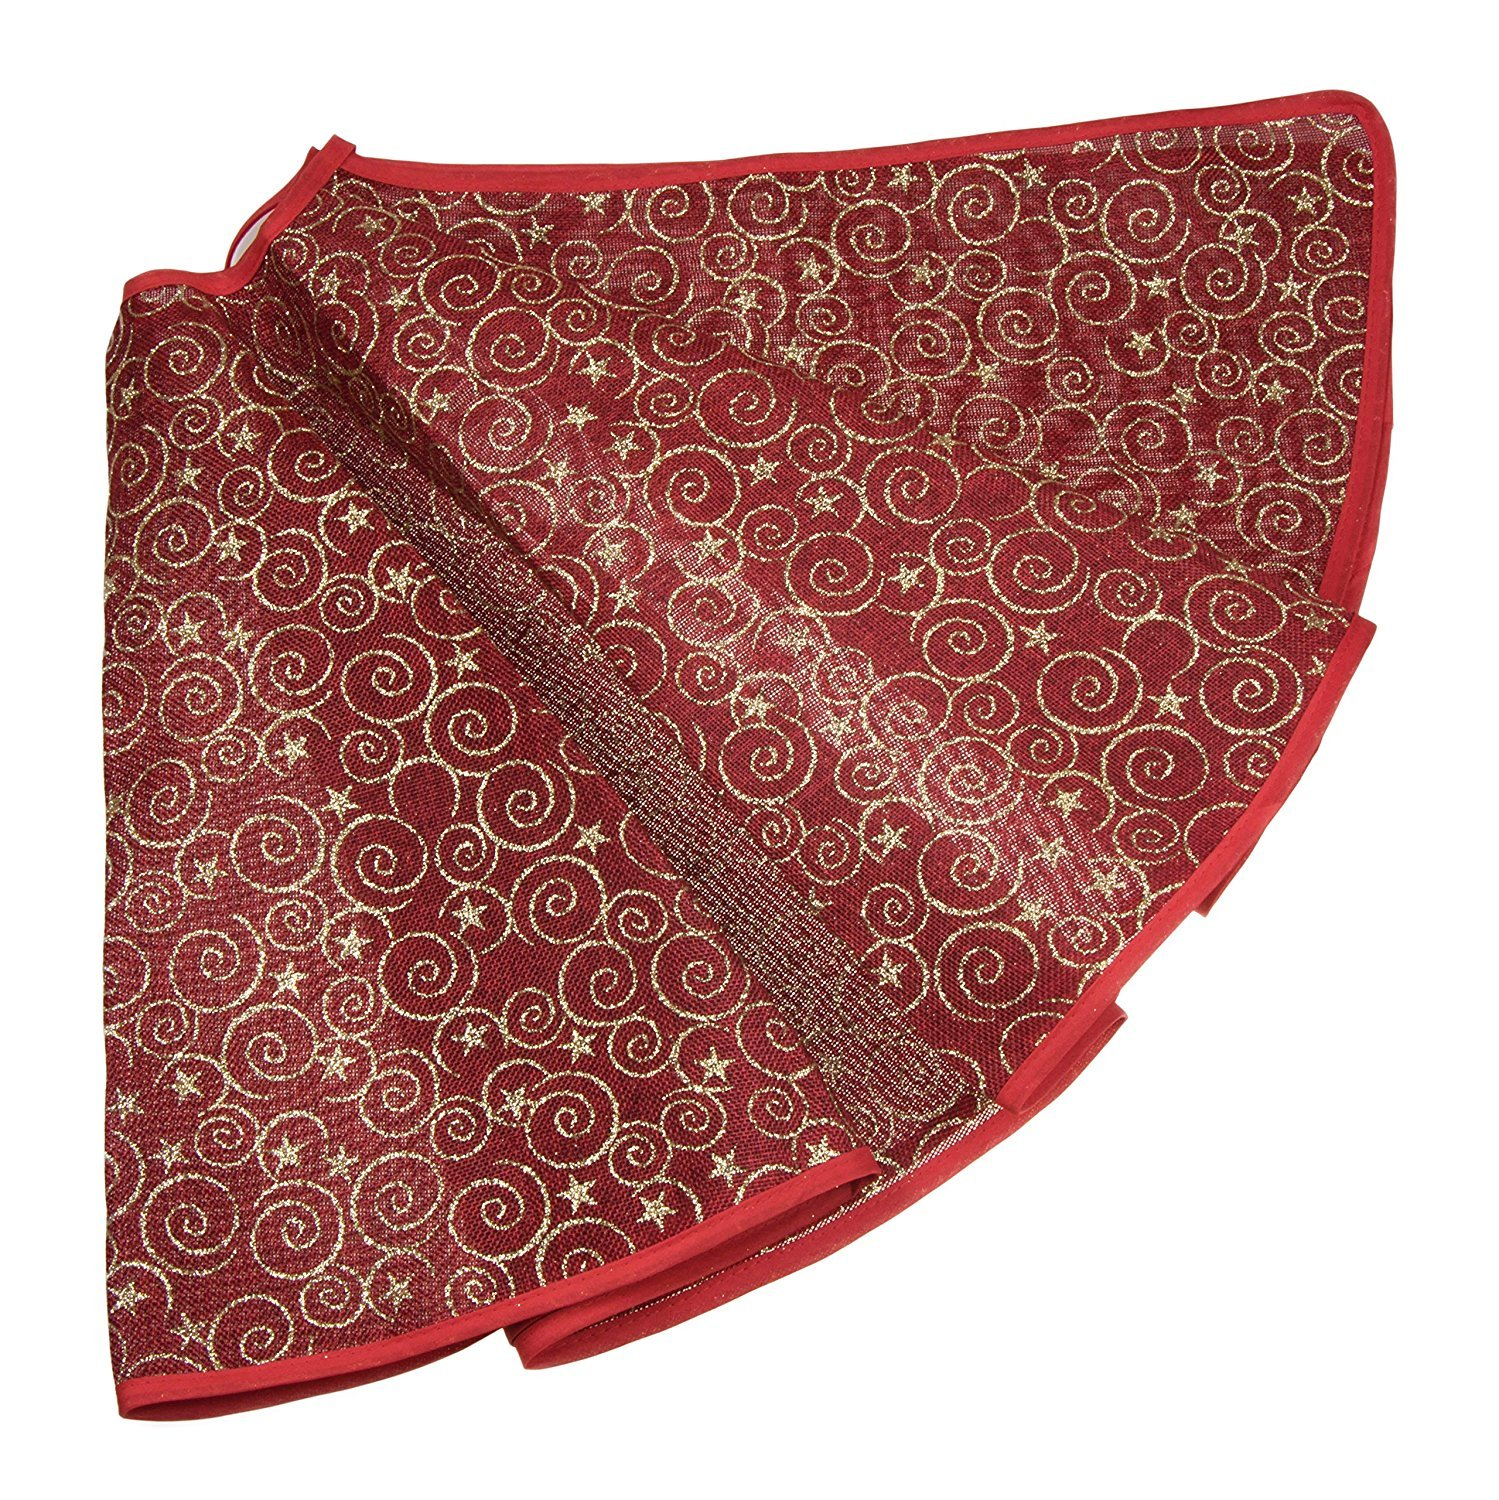 Dark Red and Gold Burlap Christmas Tree Skirt by Clever Creations | Gold Spirals and Stars | Traditional Theme Festive Holiday Design | Contain Needle and Sap Mess on Floor | 40'' Diameter